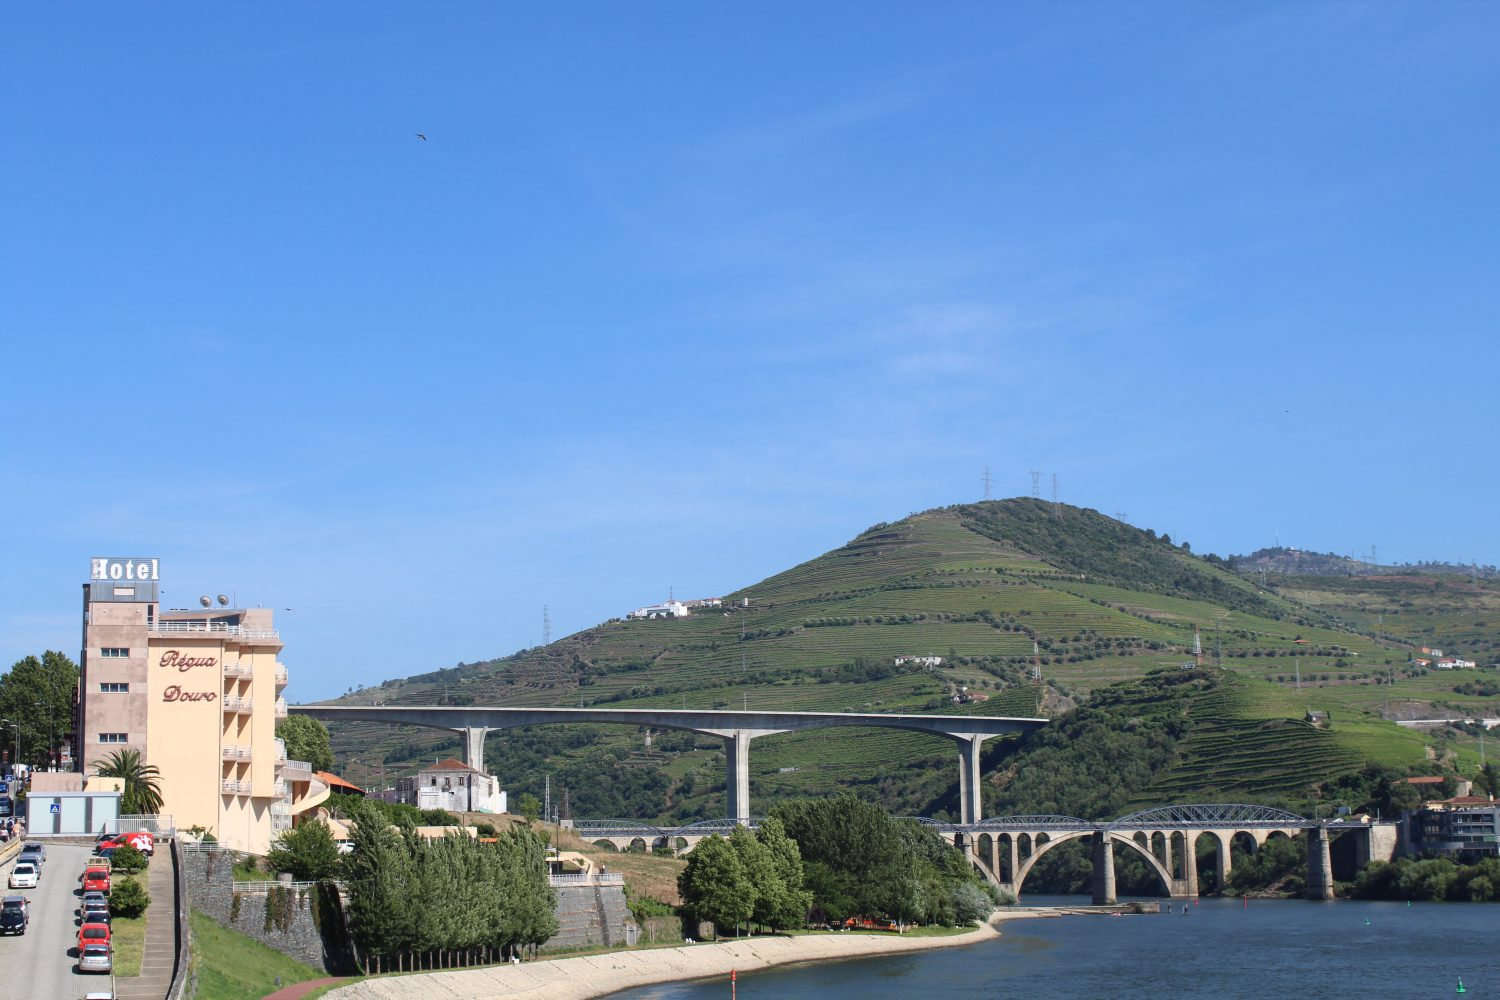 View to Hotel Regua Douro from Cais da Regua